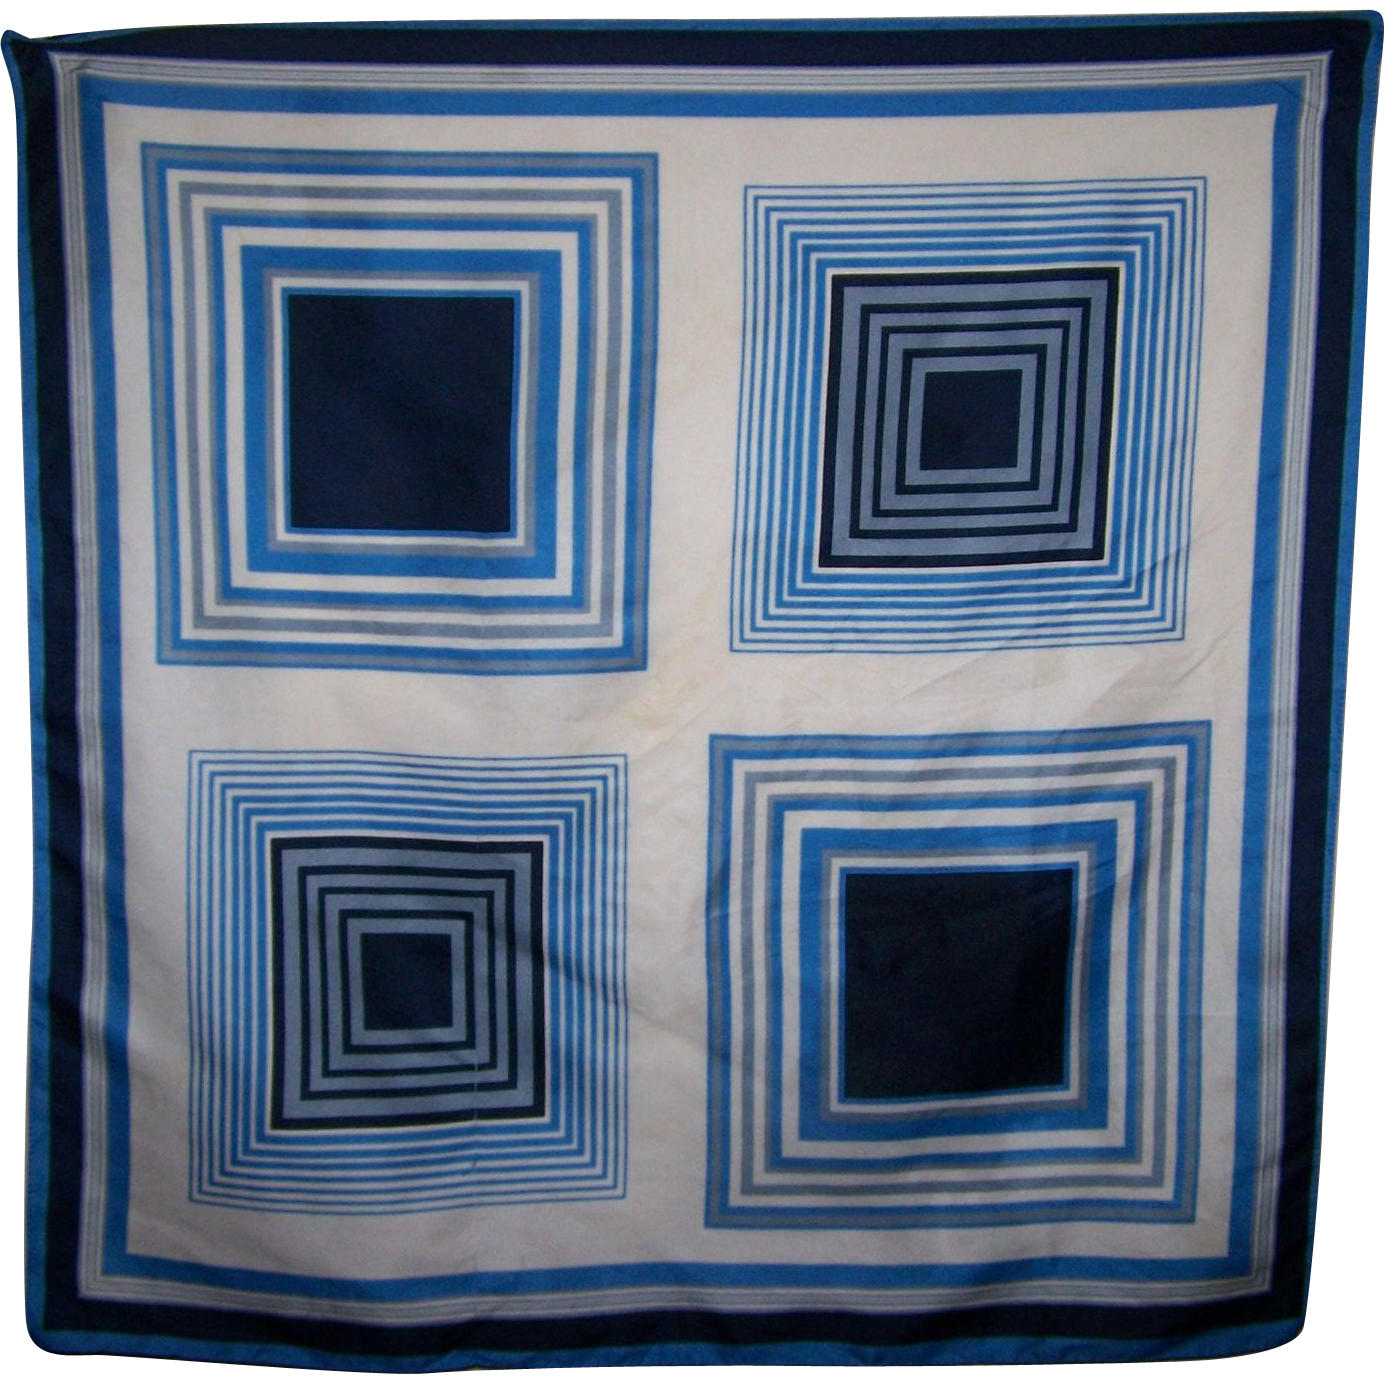 A Vintage Geometric Optical Illusion Op Art Fashion Scarf Made in Italy